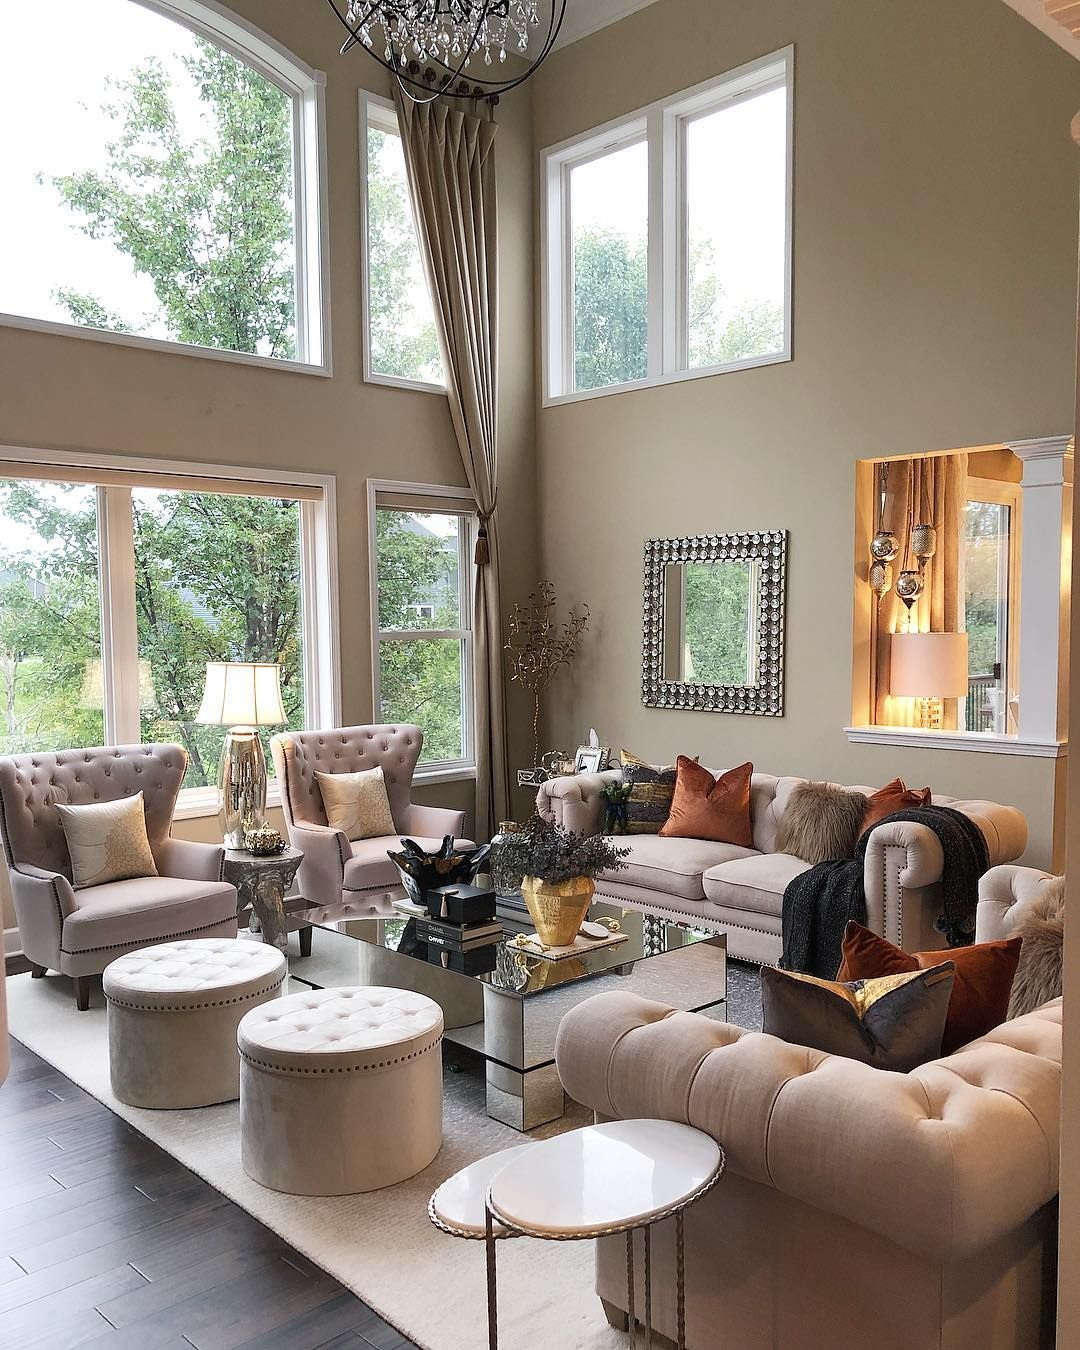 Inspire Me Home Decor On Instagram And Just Like That Fall Is Upon Us At Least In My Home Luxury Living Room Design Home Living Room Living Room Designs